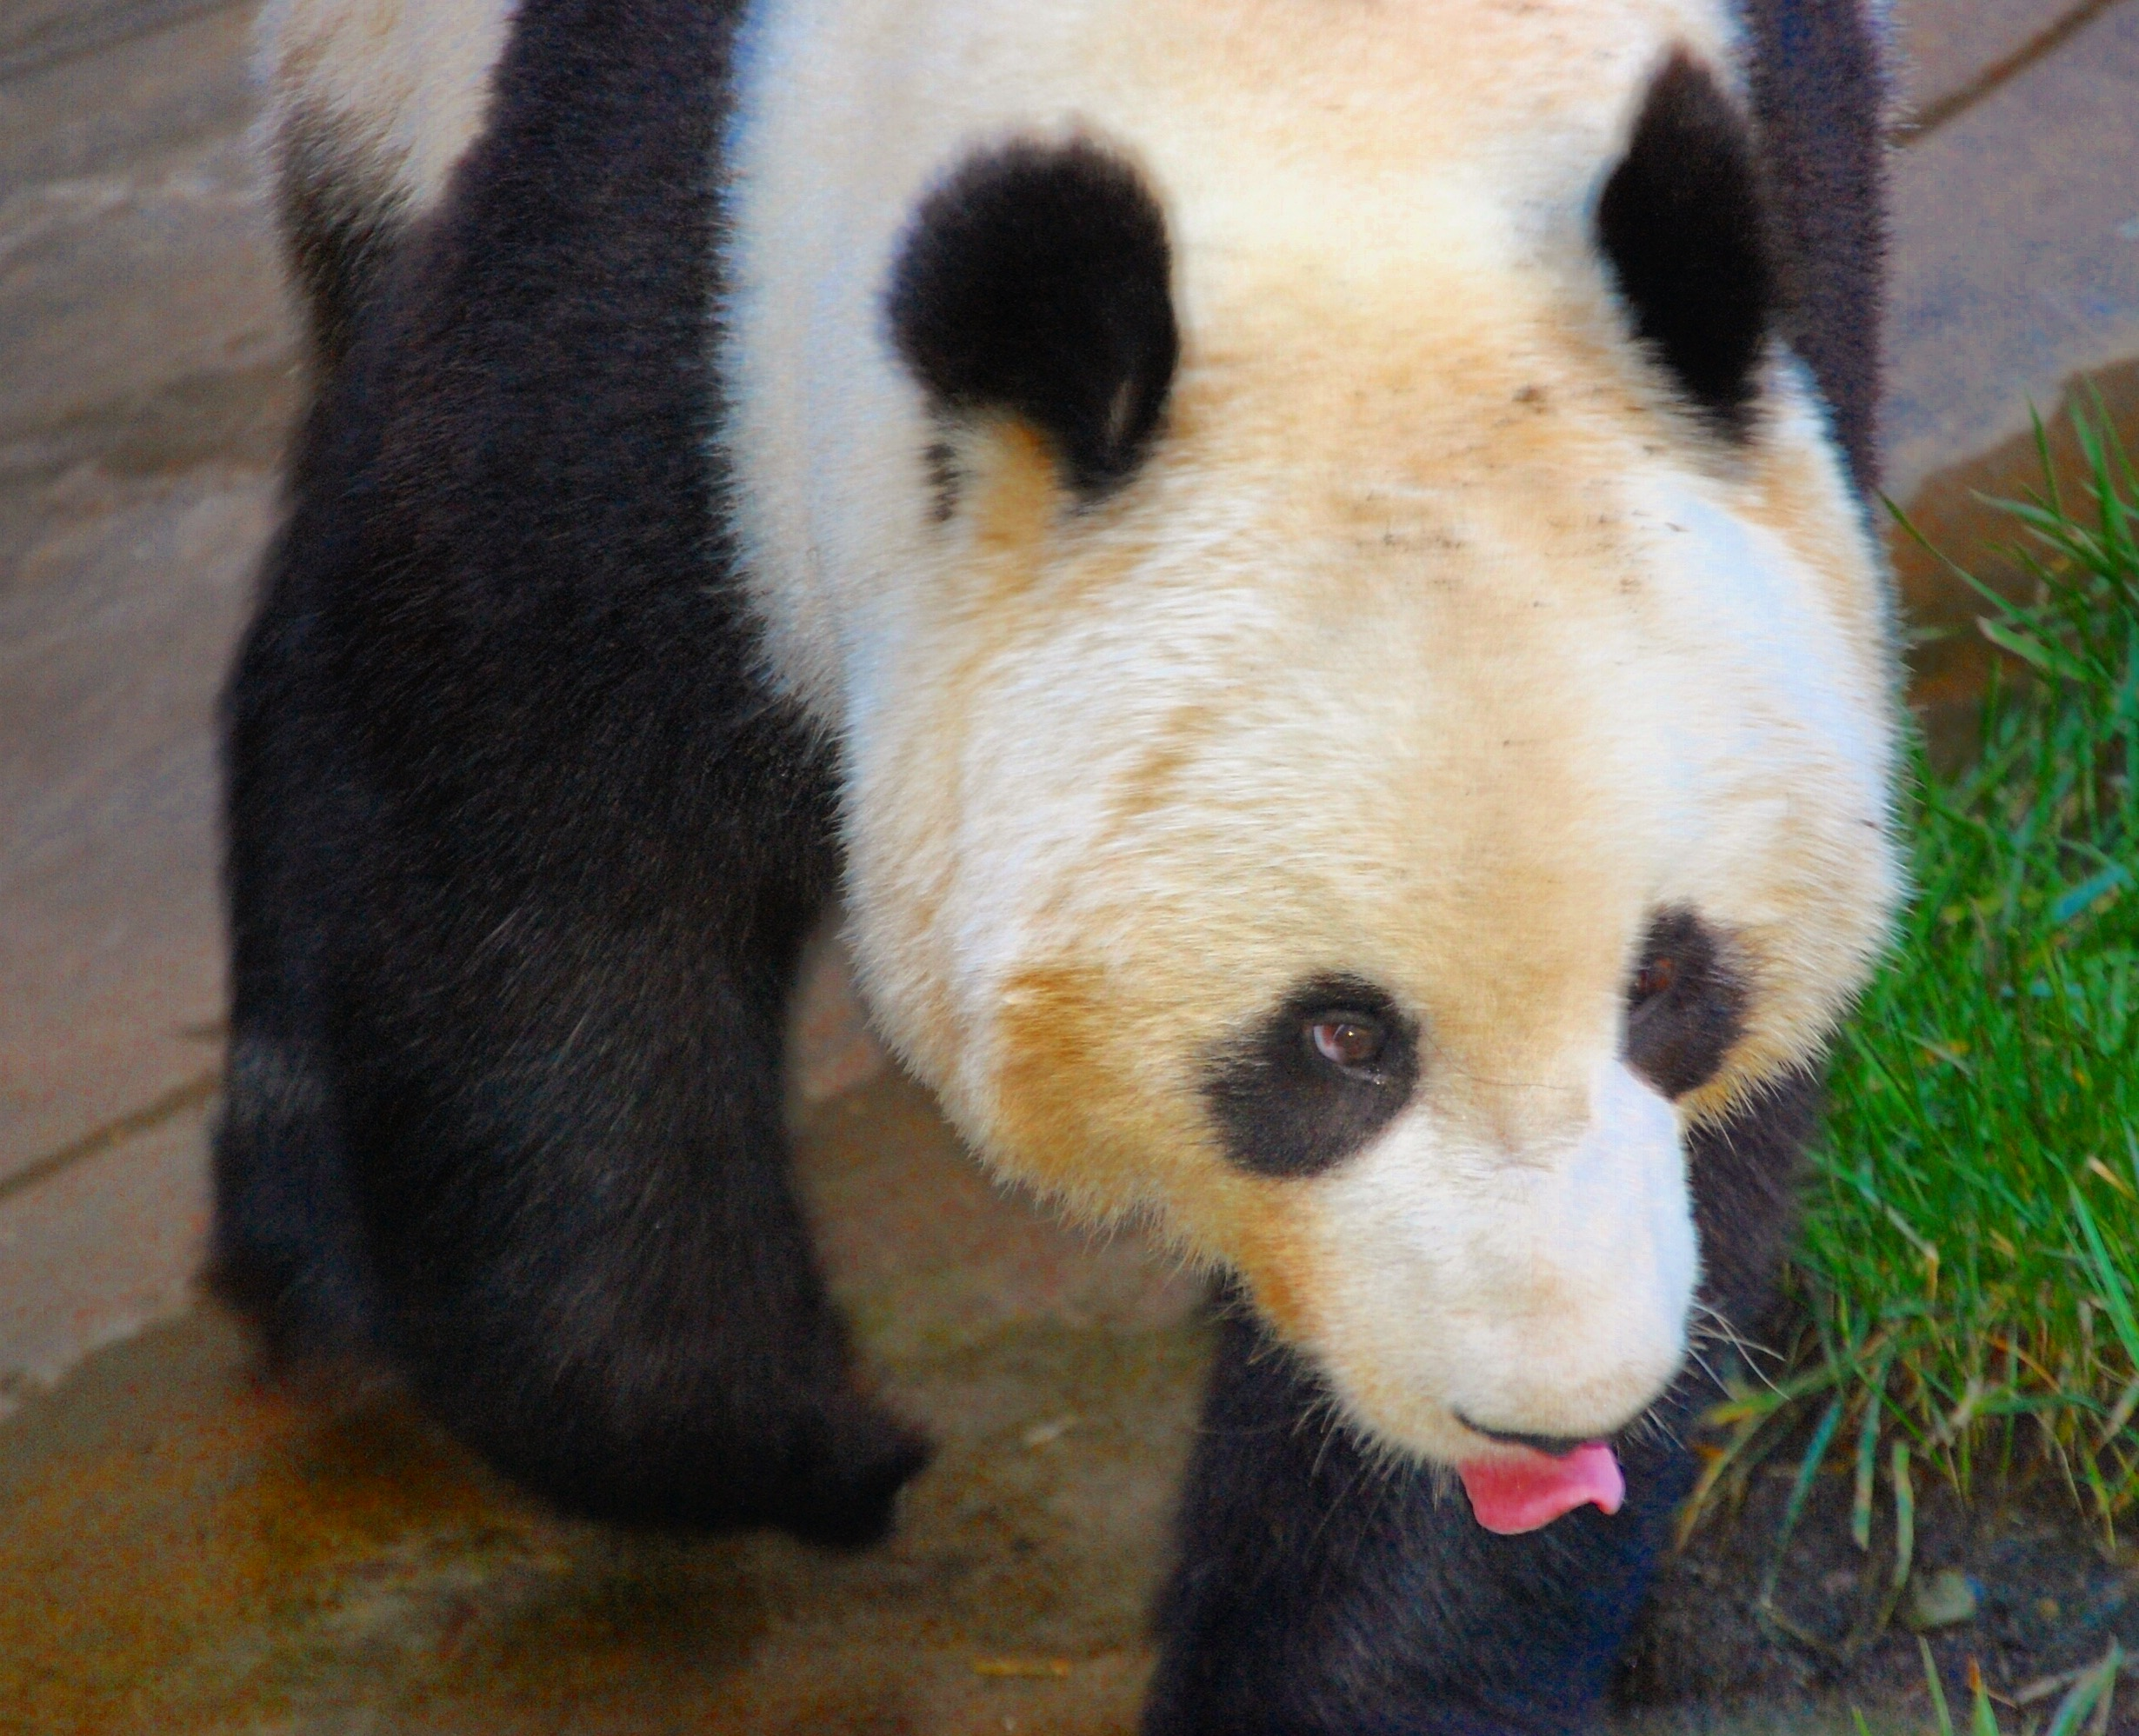 2. Panda Bears - Not only are these black and white fluffy bears adorable, but they are also extremely rare. Only 4 zoos in the US have giant pandas: Atlanta, DC, Memphis, and San Diego. San Diego treats their pandas like royalty with 2 acres for three pandas, endless bamboo gardens, and air-conditioned bedrooms.